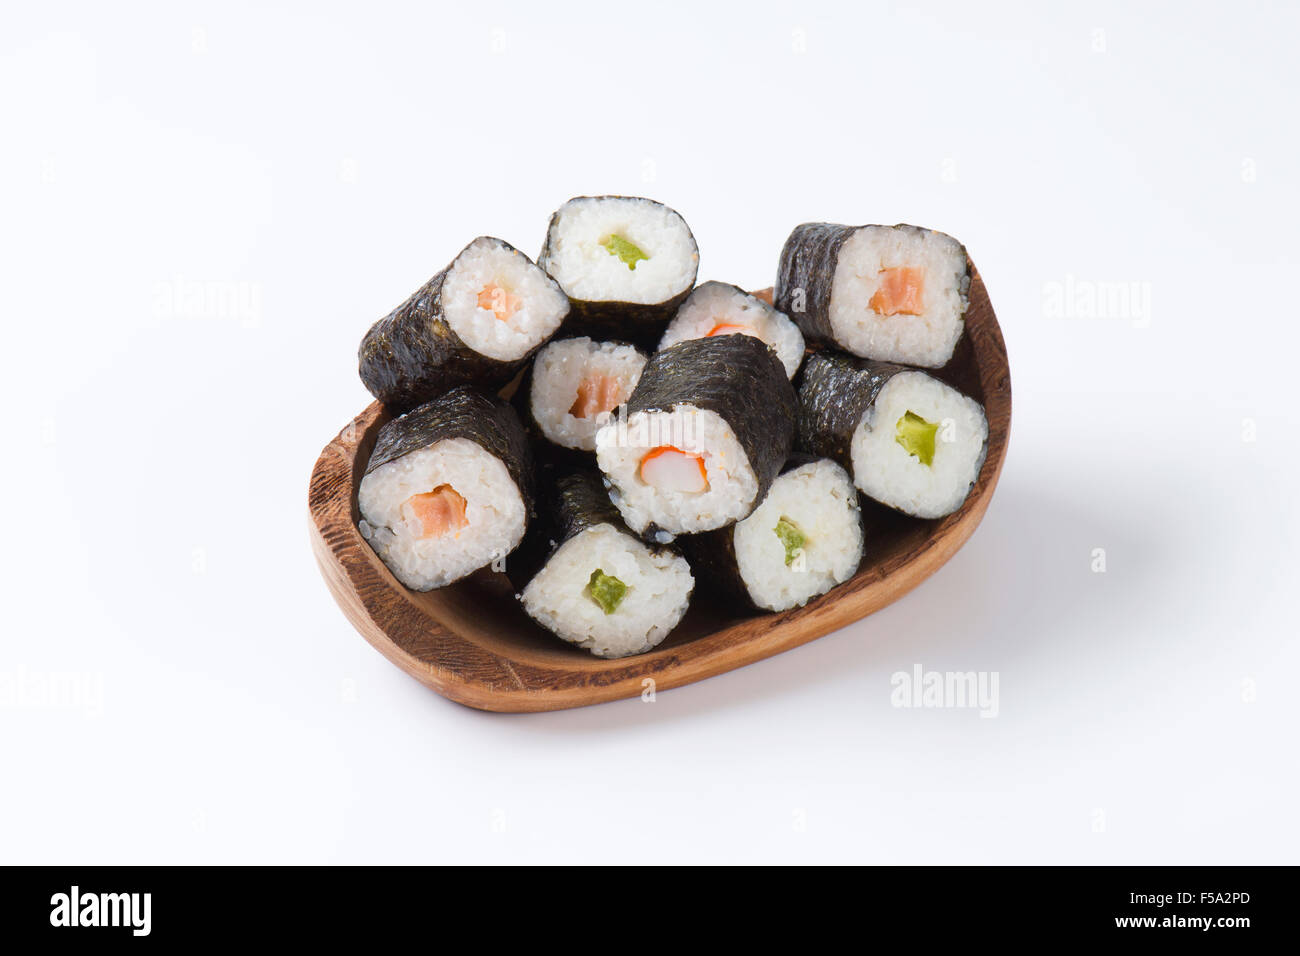 Maki sushi rolls with salmon, crab and cucumber inside - Stock Image